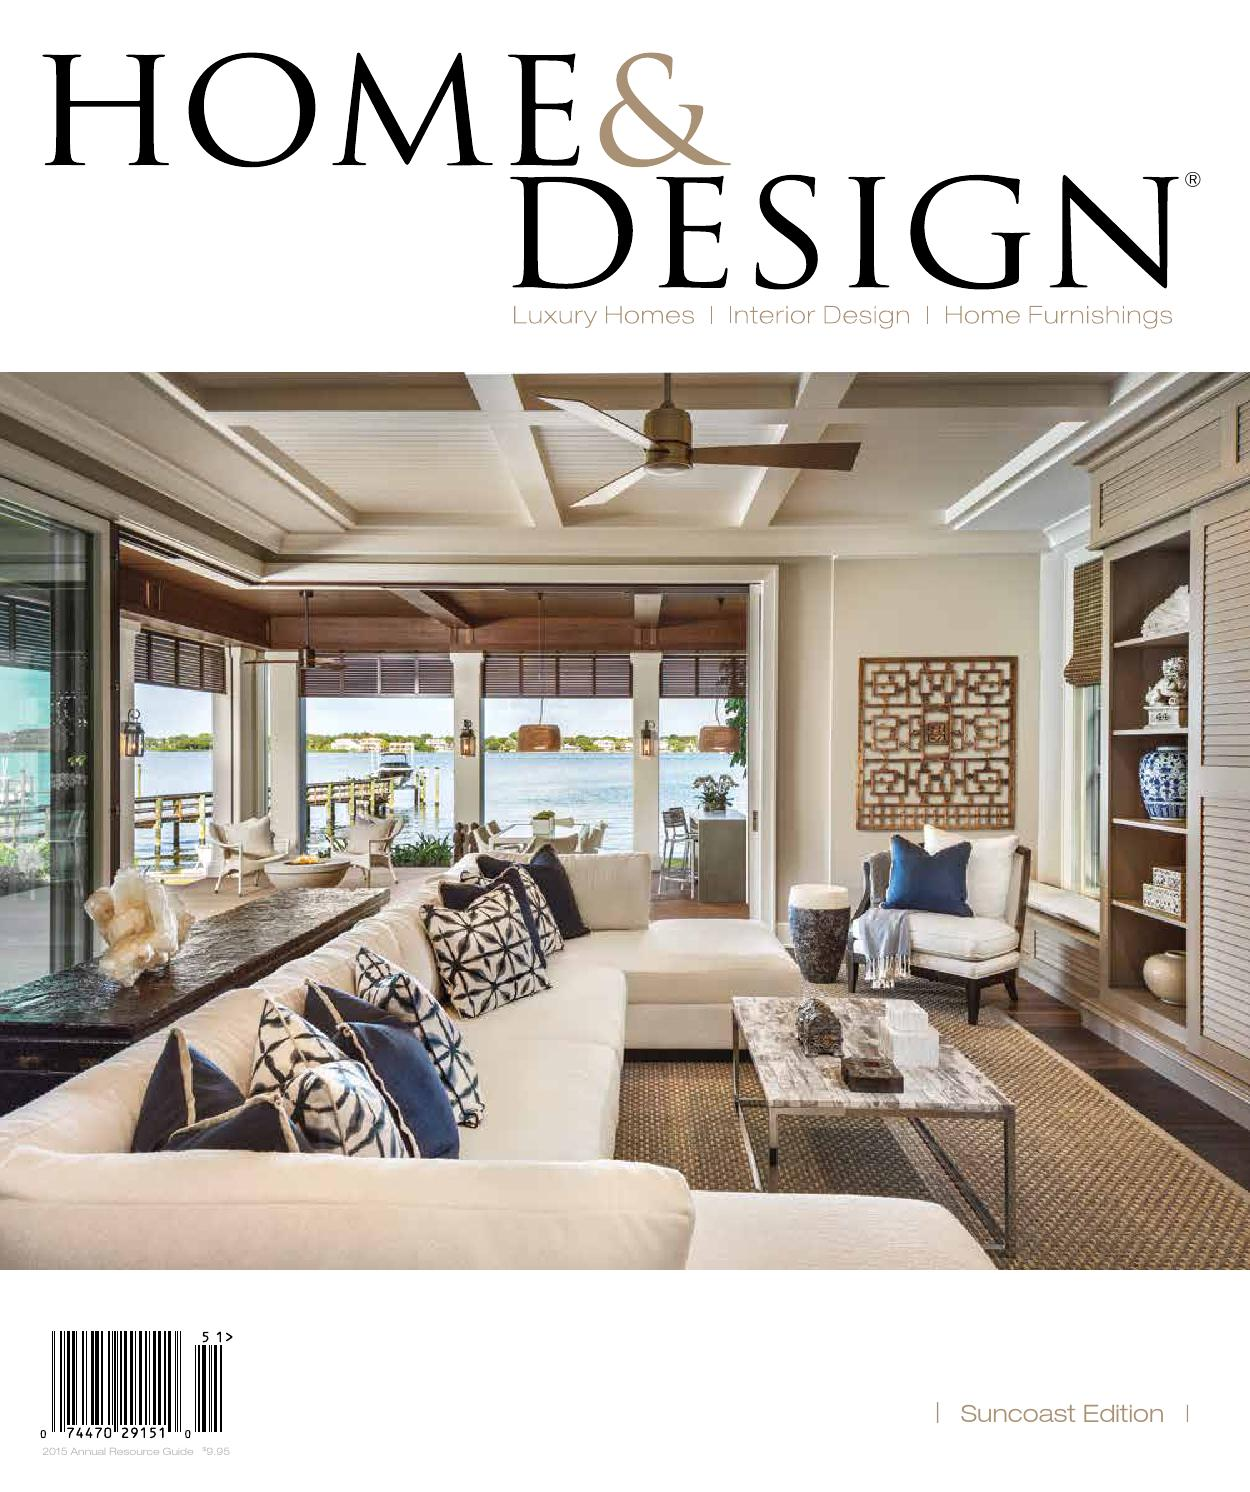 Home design magazine annual resource guide 2015 for Interior design resources